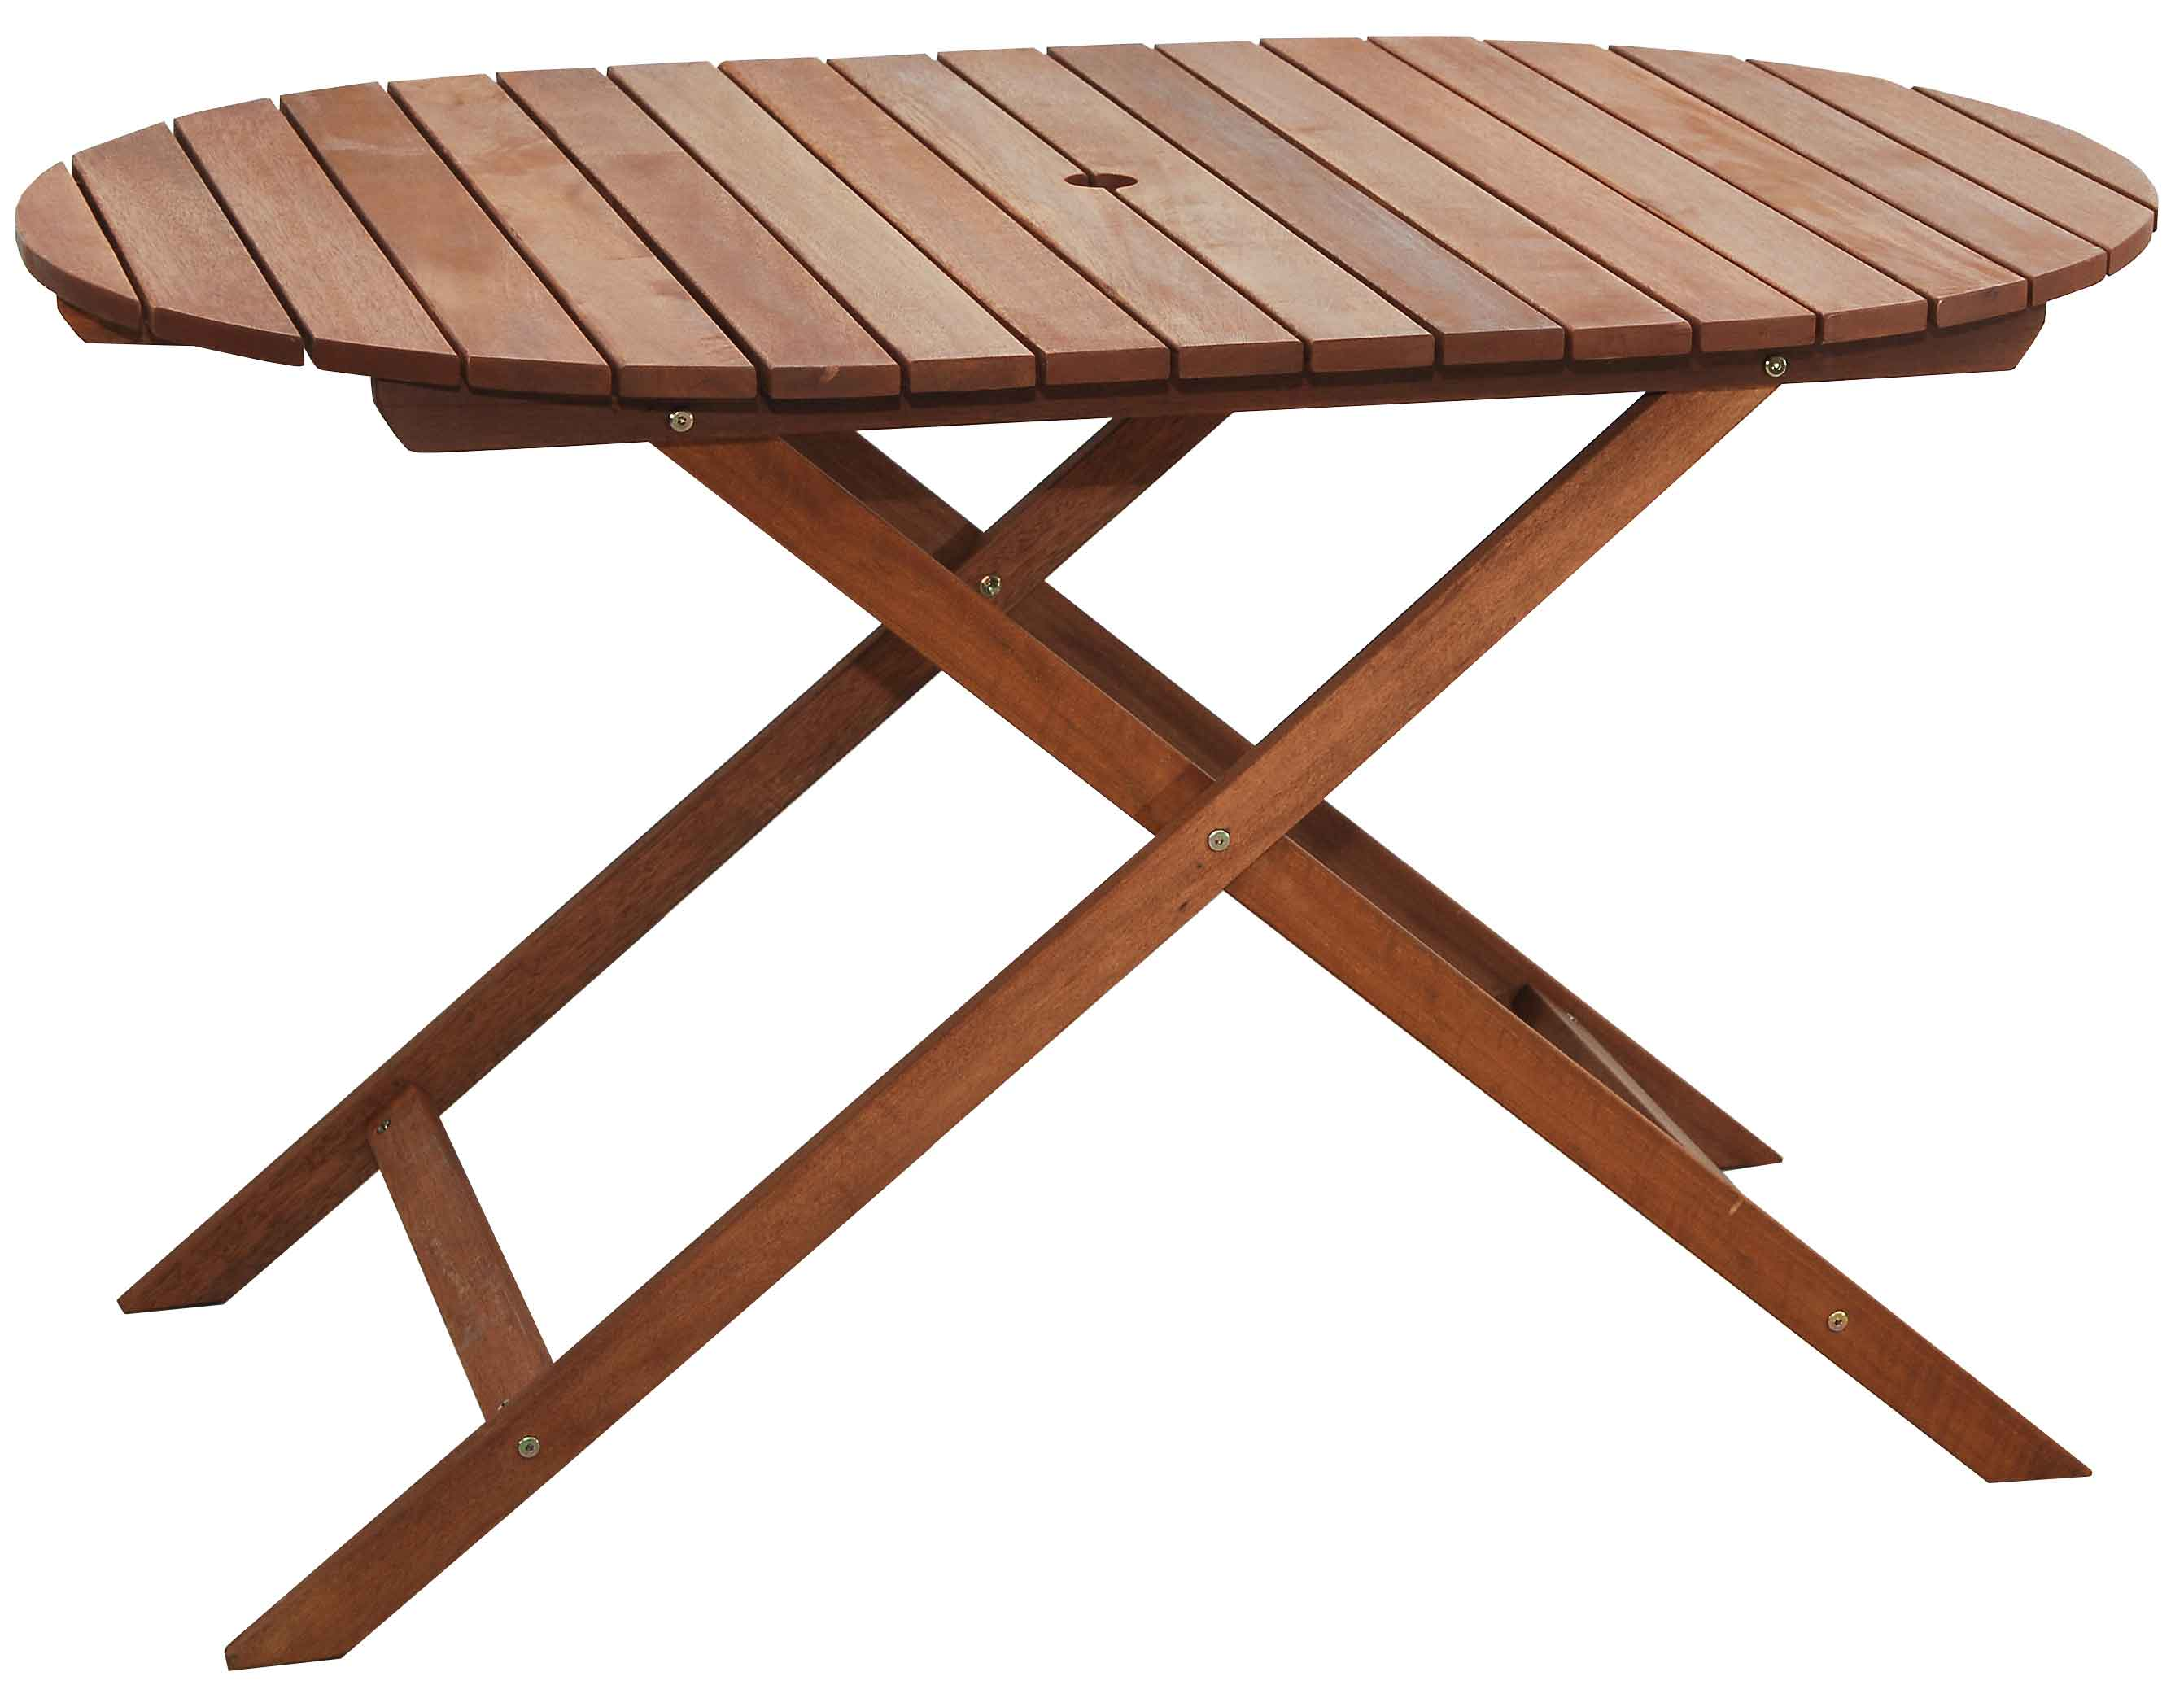 FOLDING WOOD MERANTI OVAL TABLE L100*W80*H70cm WEIGHT:10.5kg